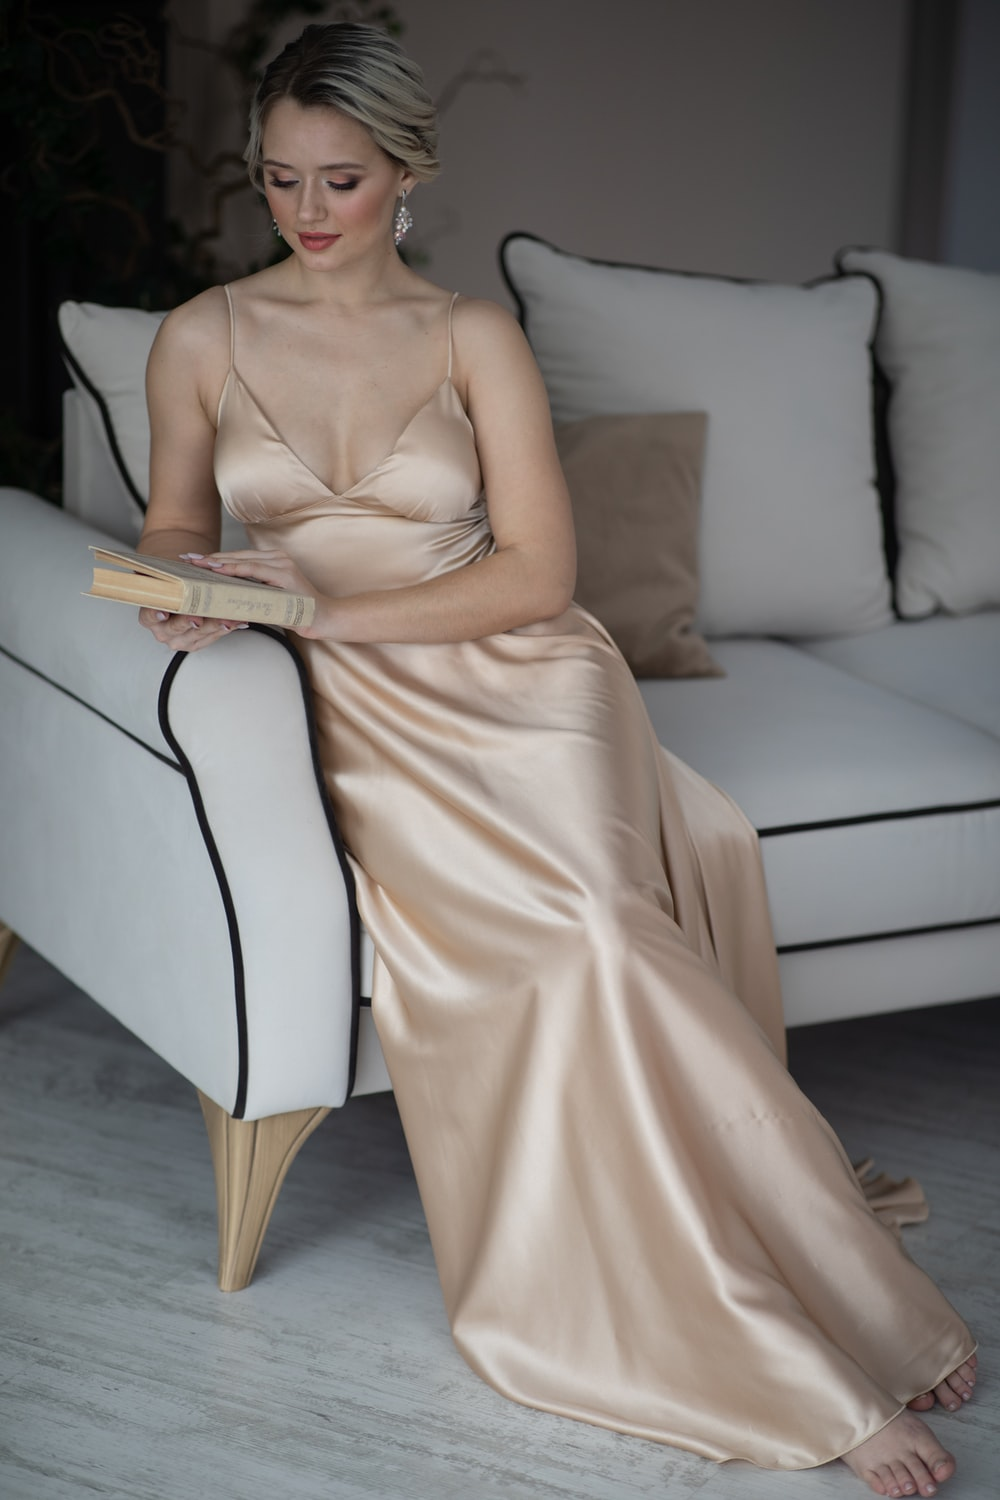 woman in white dress sitting on white couch